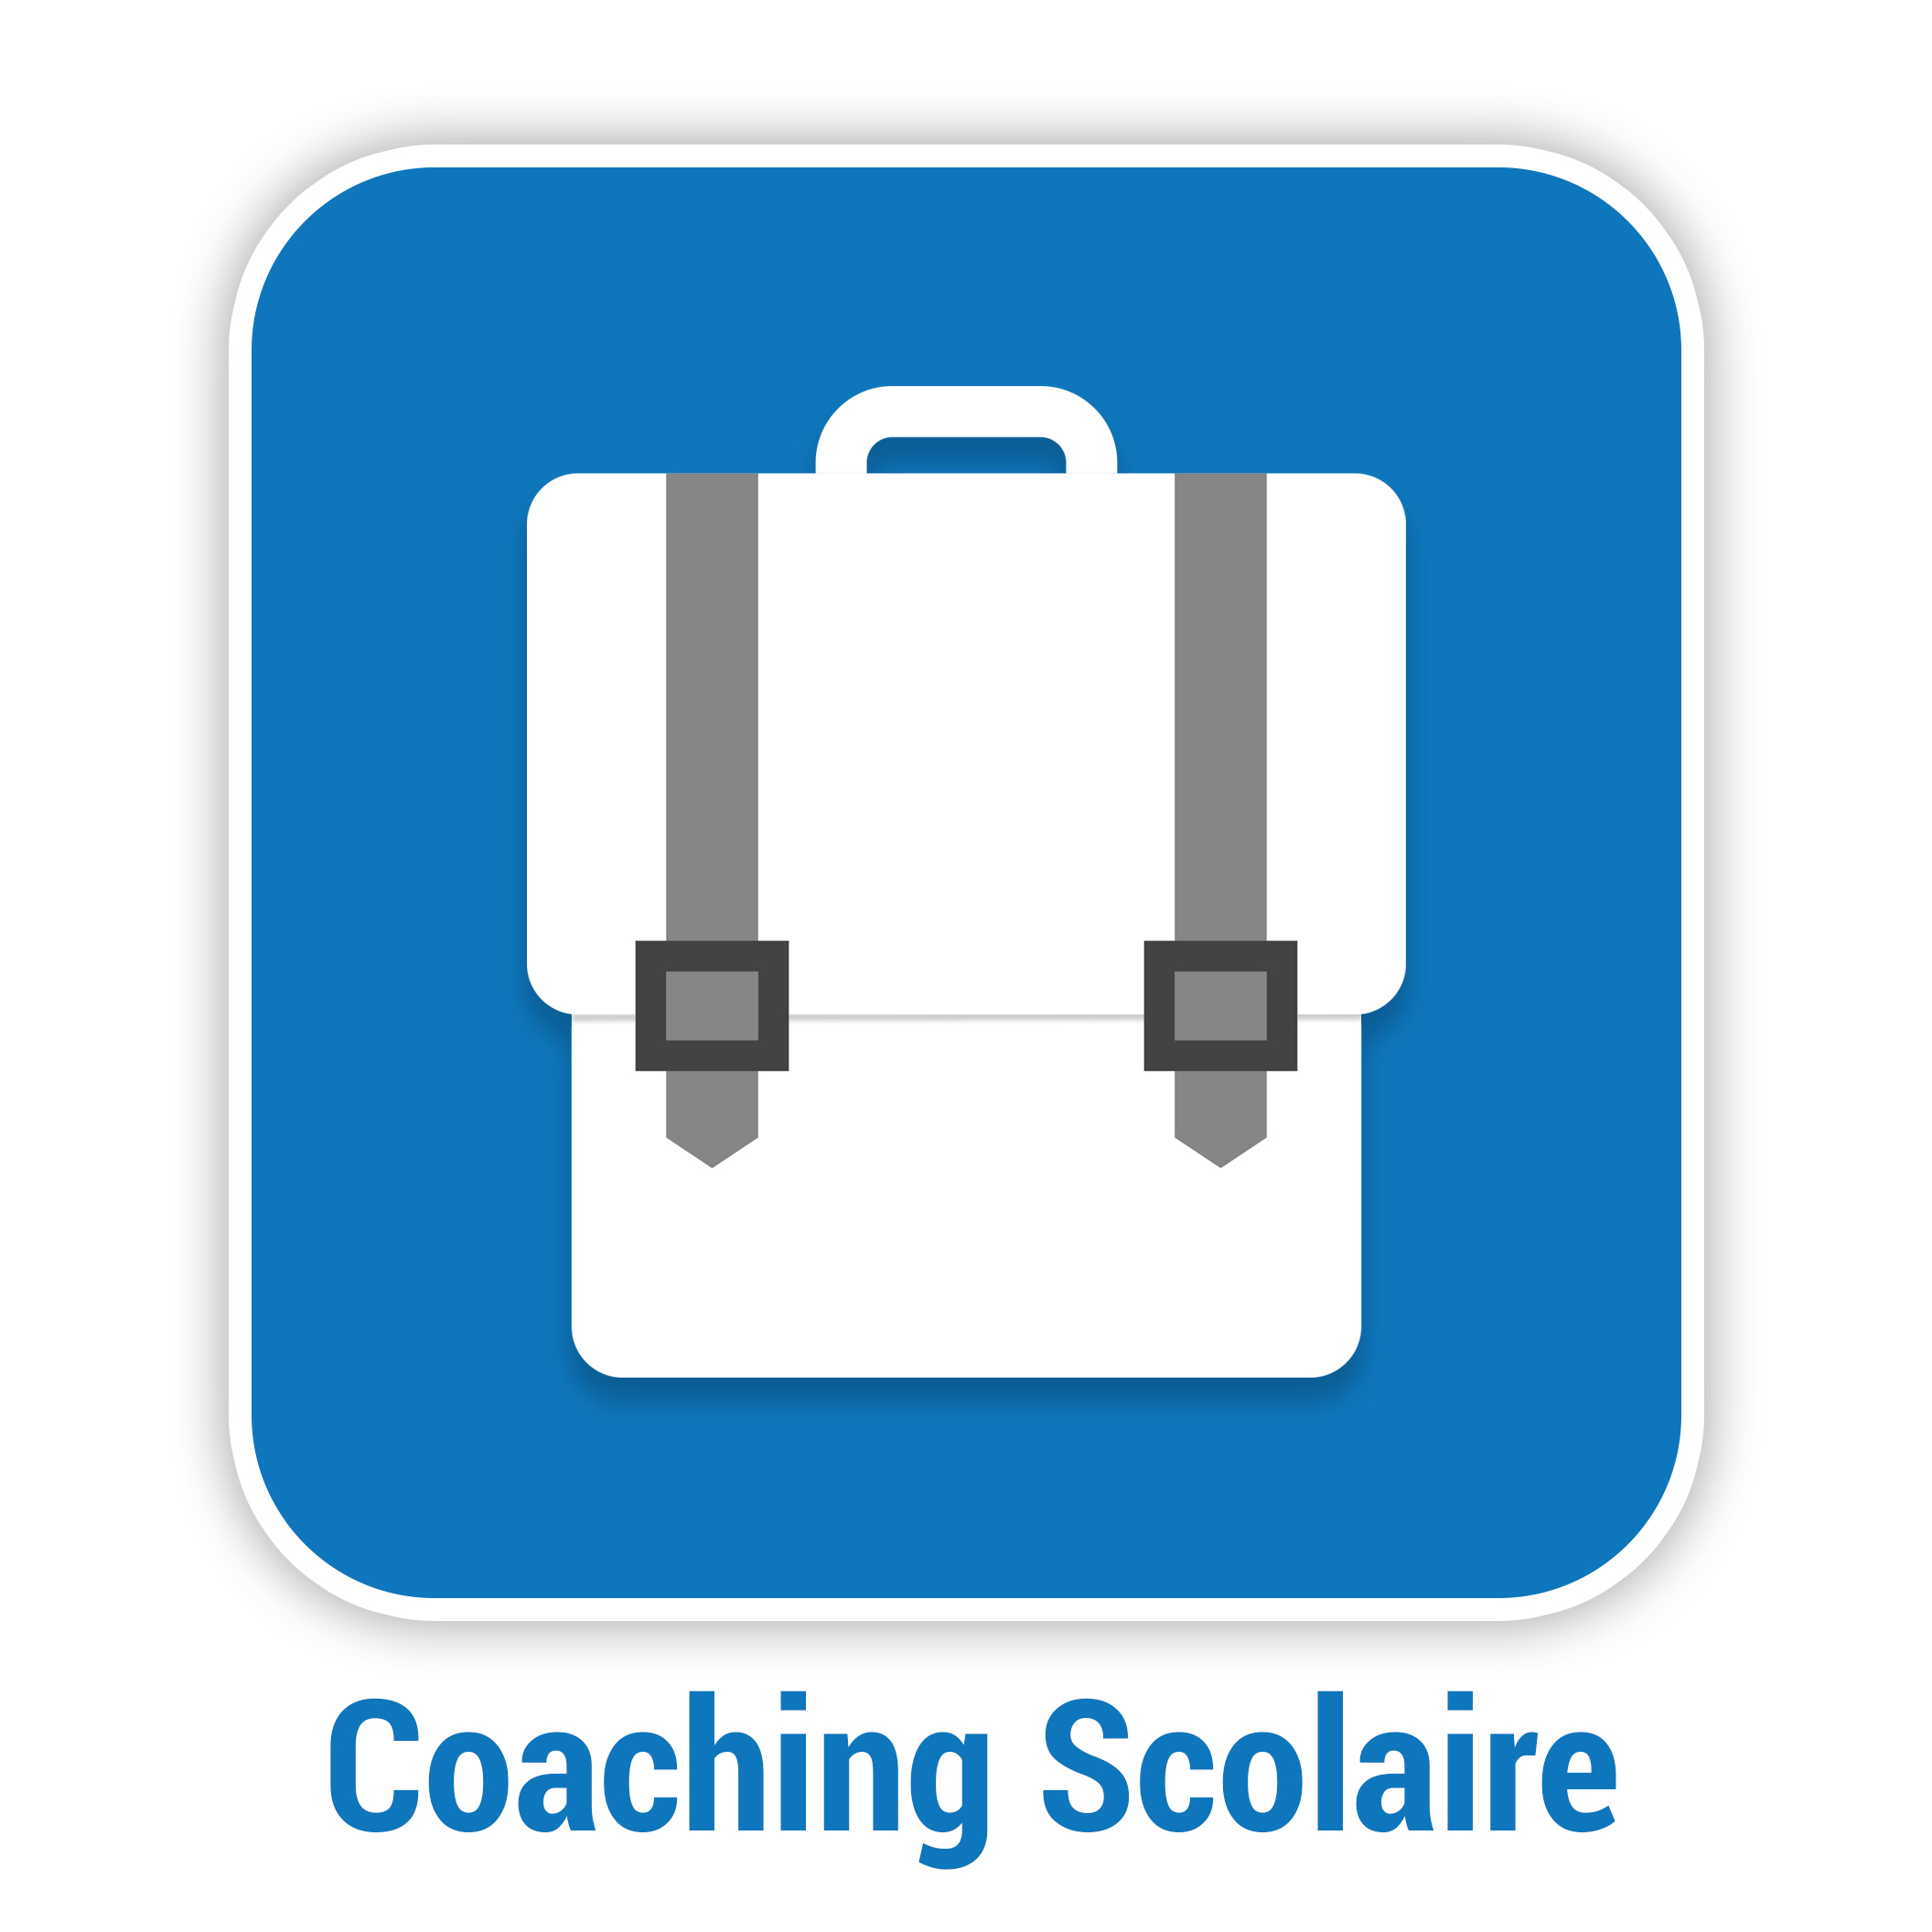 Coaching scolaire.